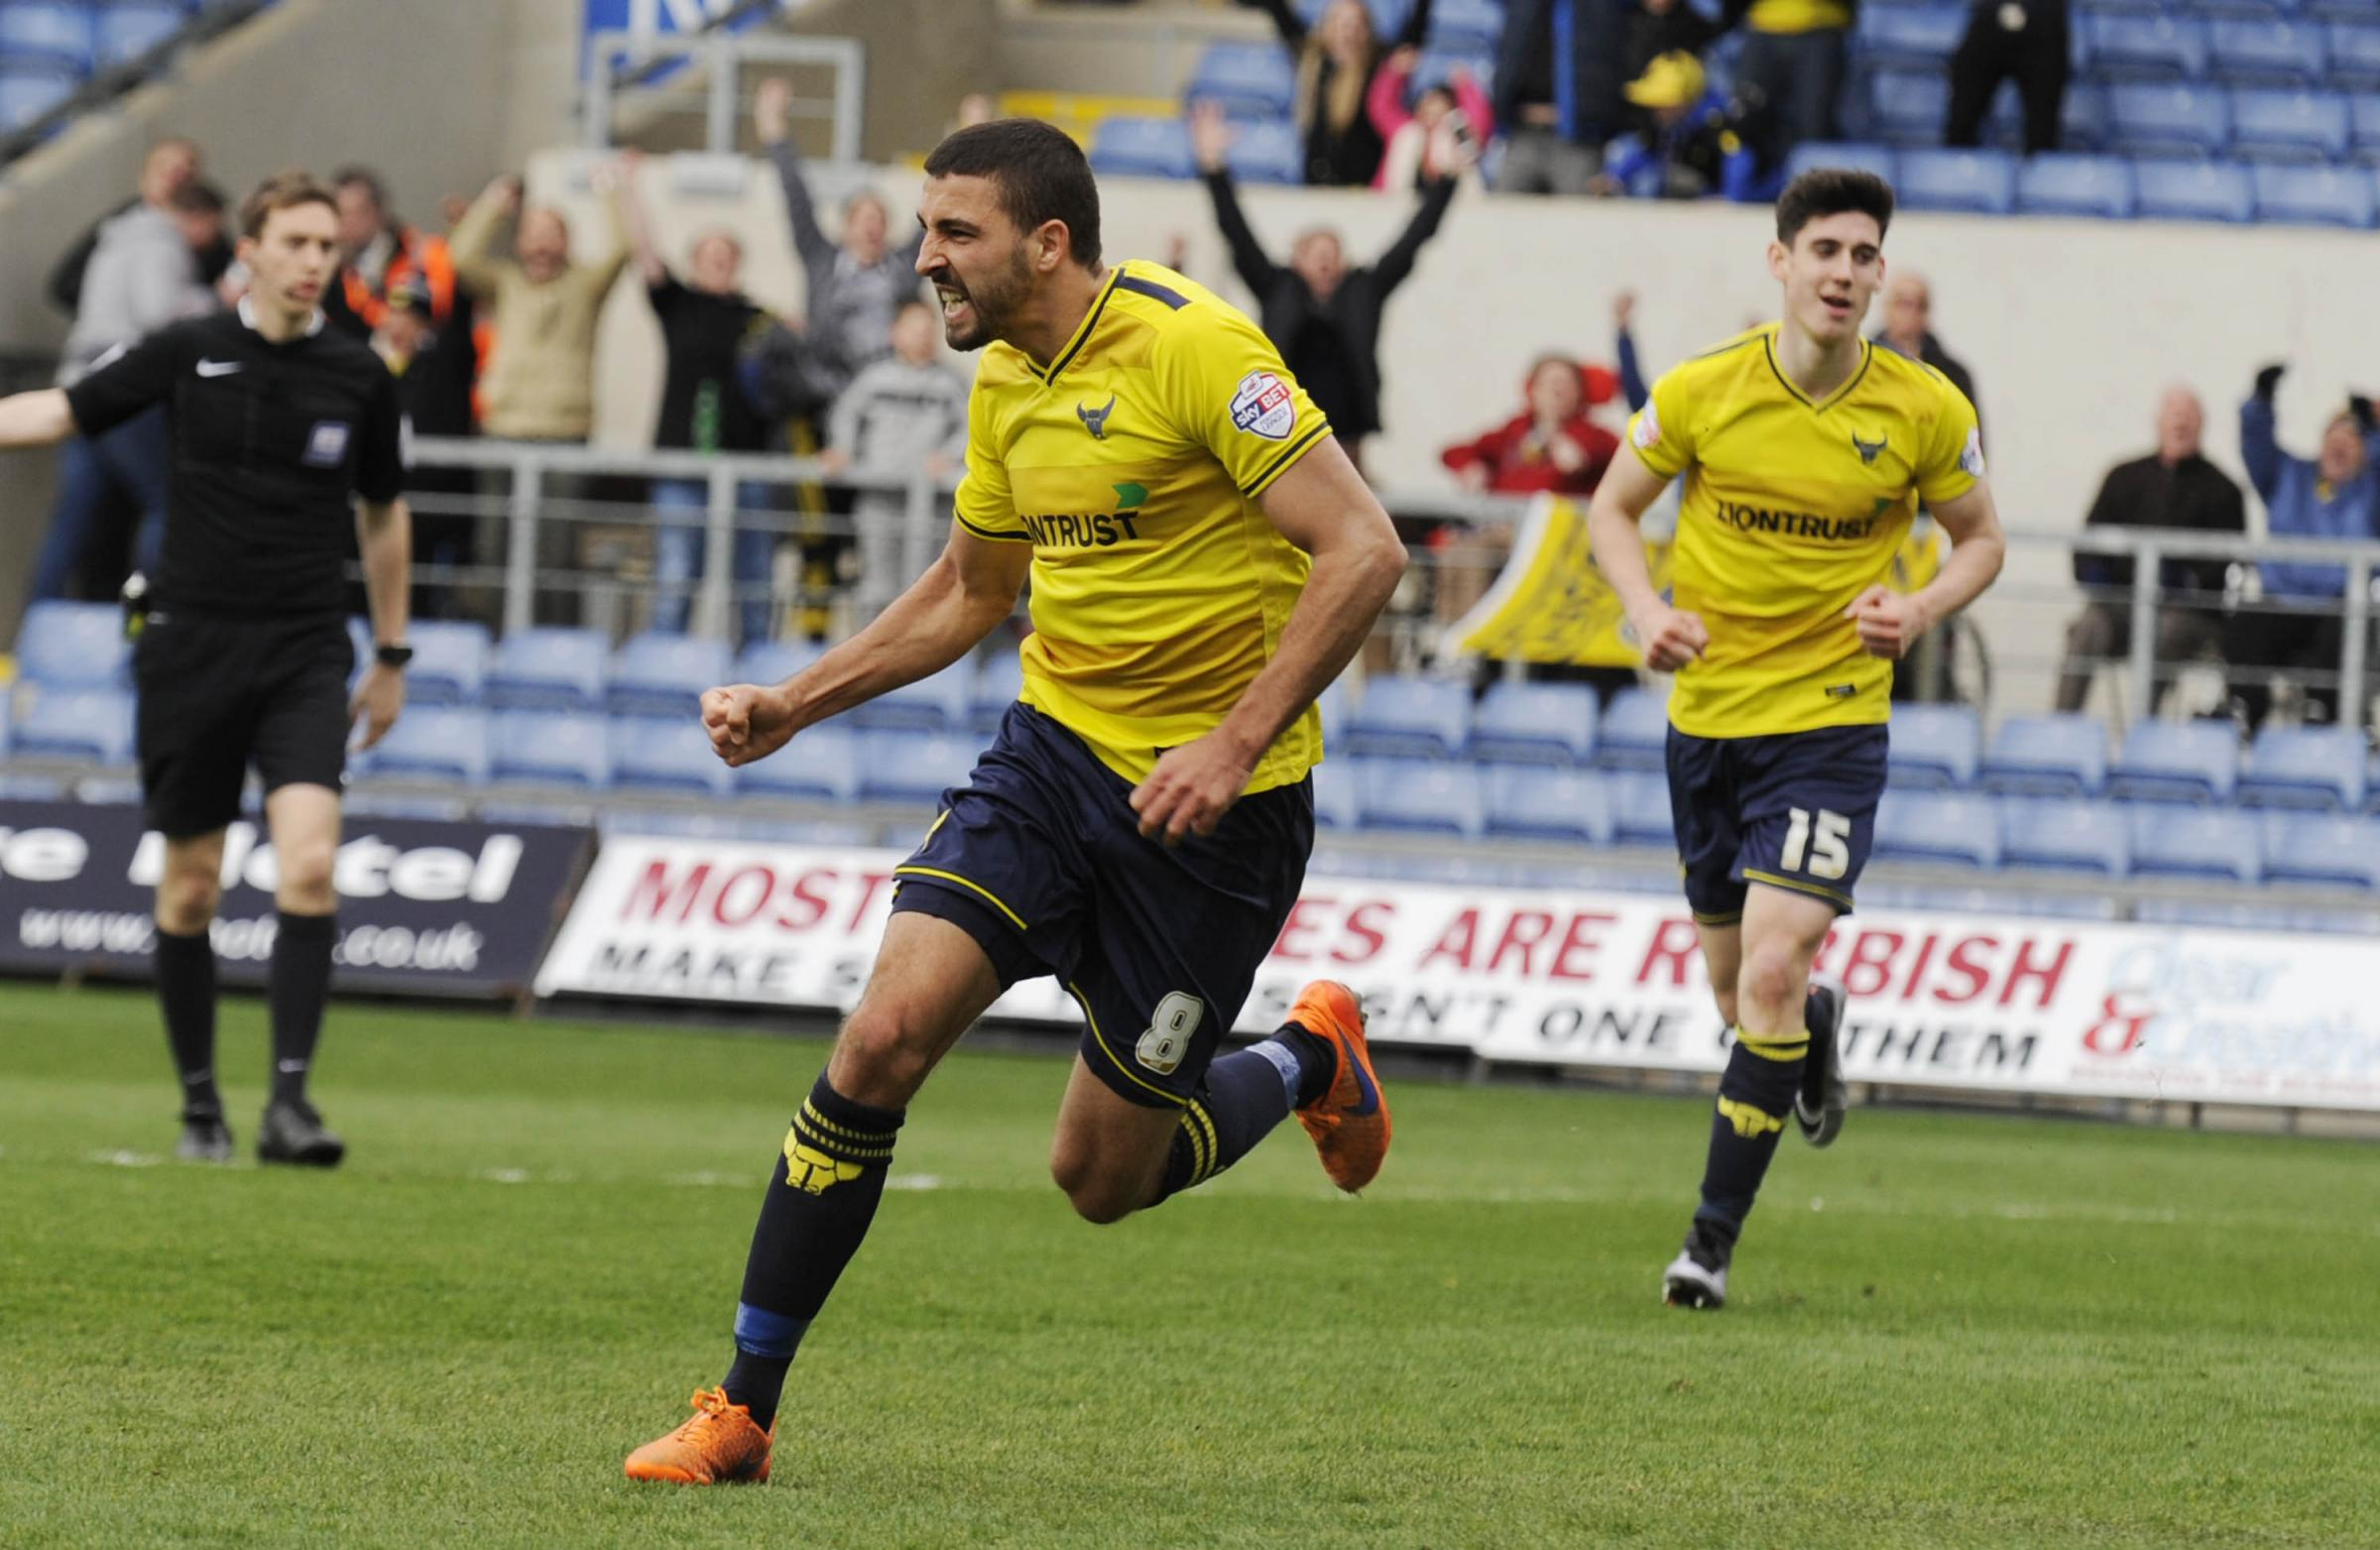 Liam Sercombe, along with Kemar Roofe, completed a deal to join Oxford United in the second week of the close season 12 months ago. Boss Michael Appleton is keen to make similarly quick signing this year